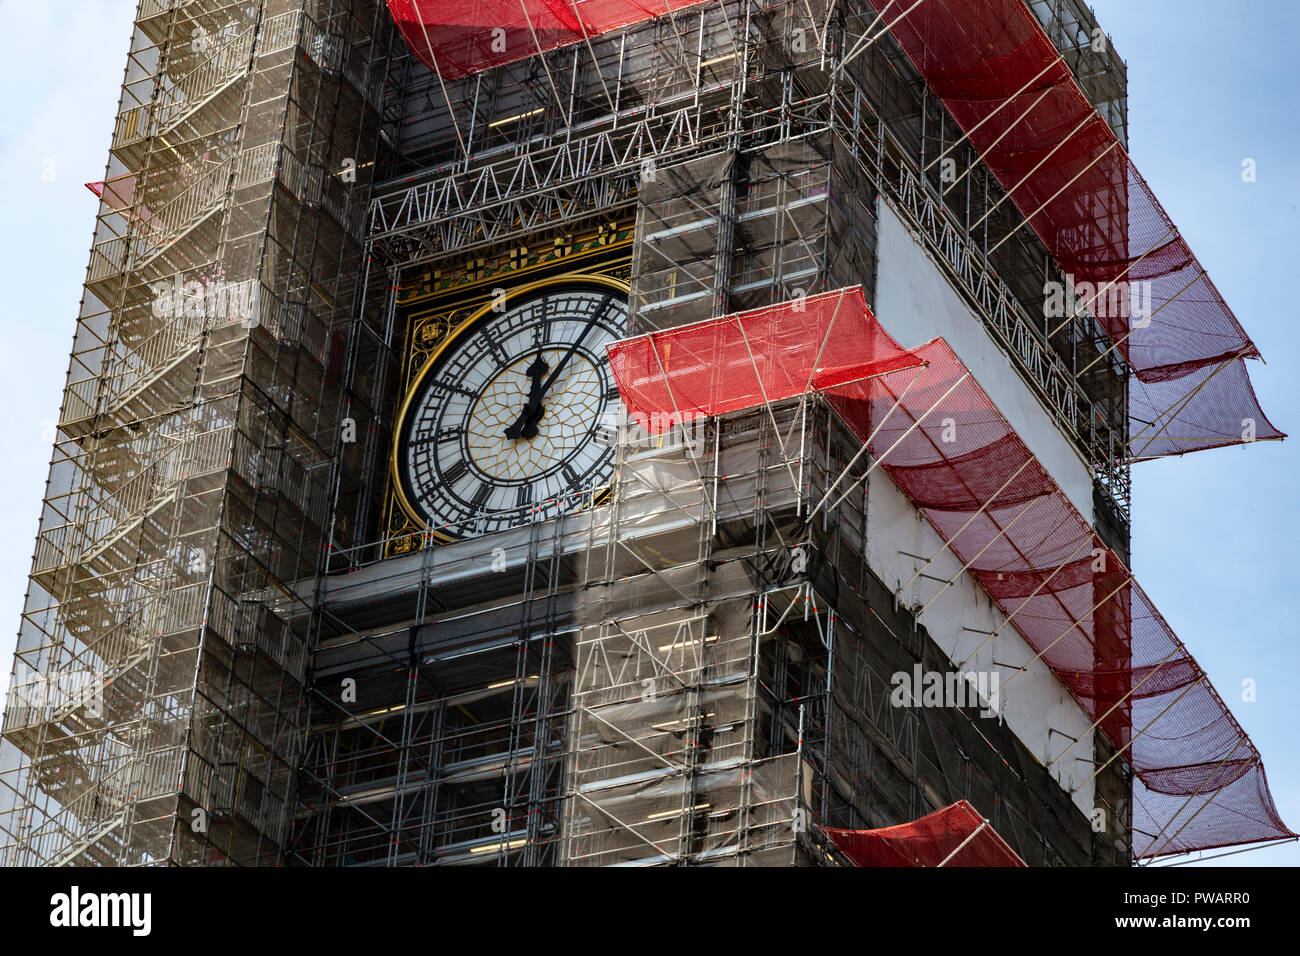 Big Ben clock still working while the tower is covered in scaffolding during refurbishment of the Houses of Parliament, London, UK - Stock Image